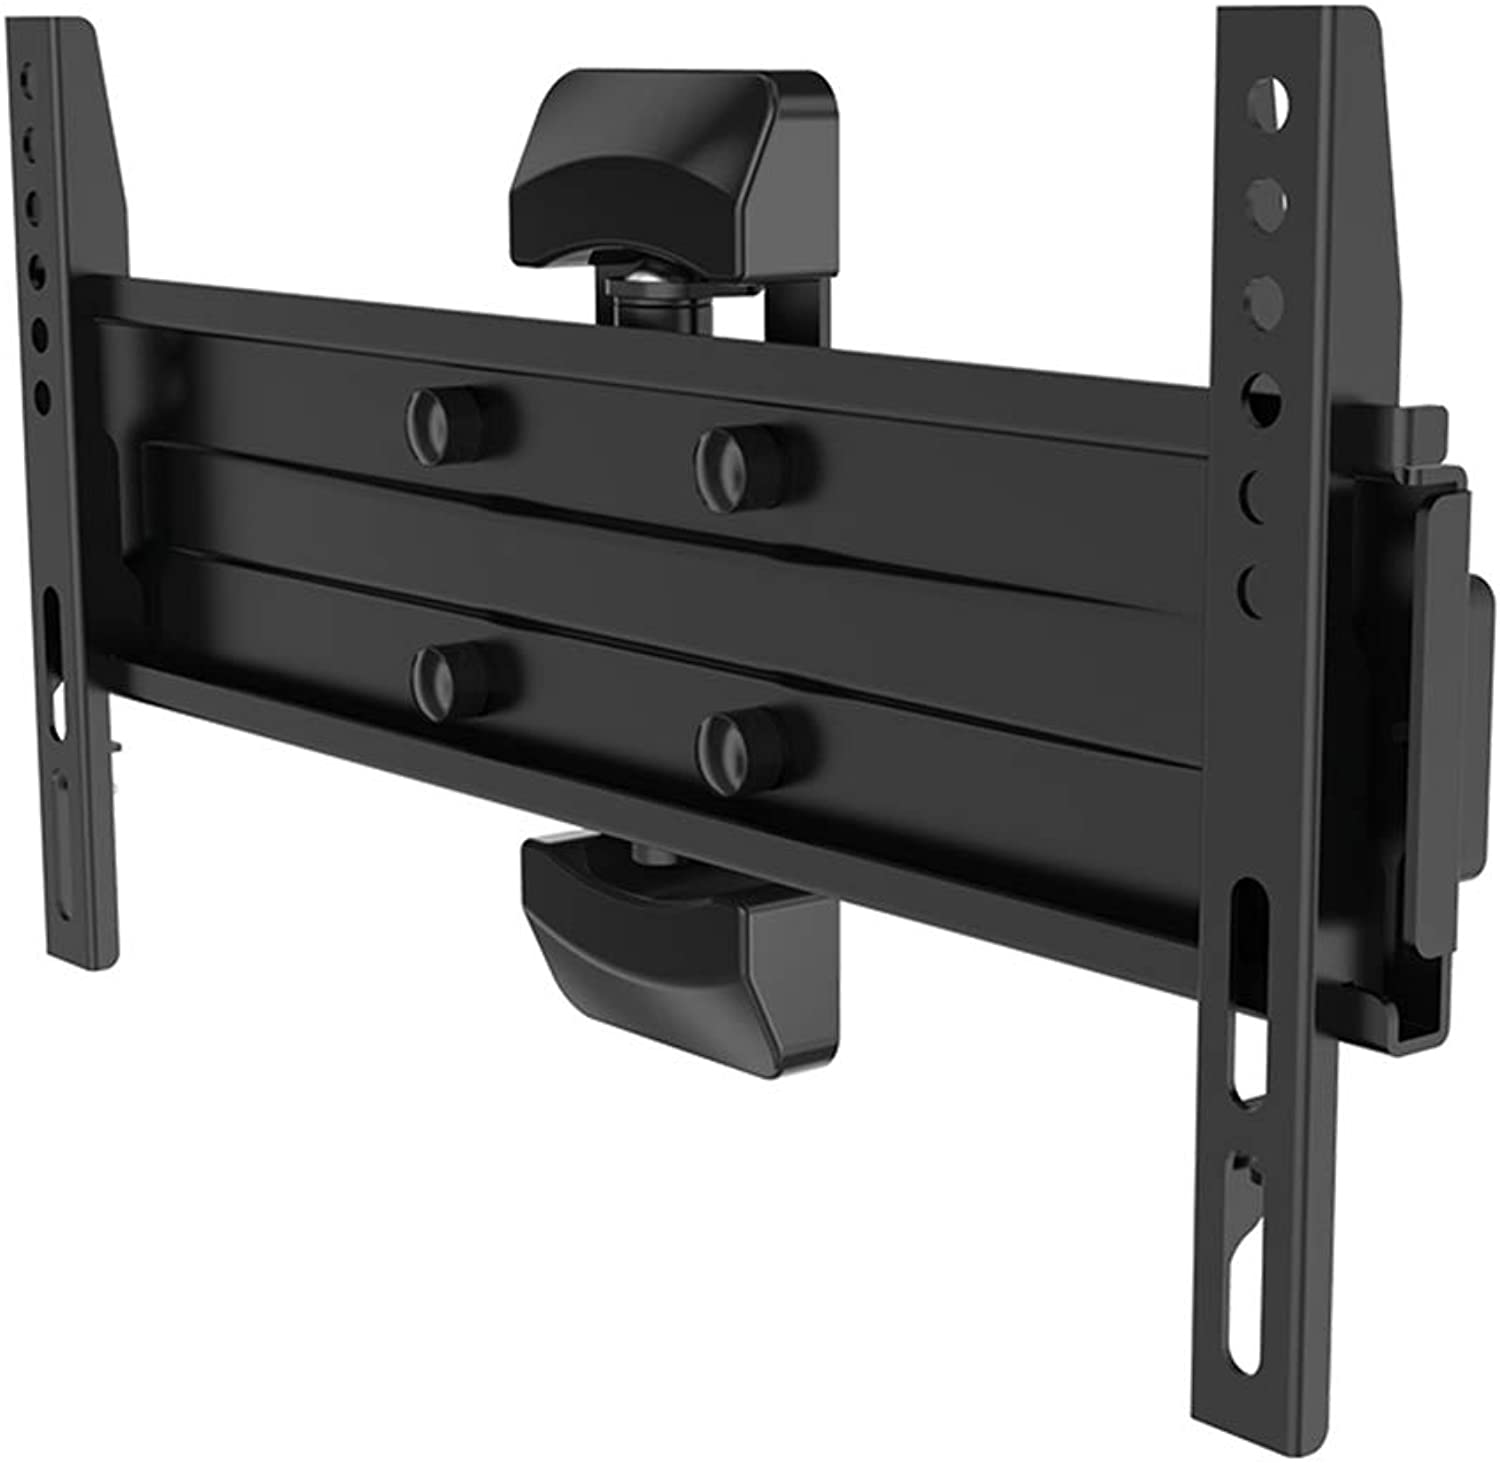 TV Wall Bracket Mount, for 4055 Inch LCD LED Tvs redating Rack Home Office Bedroom Classroom Meeting Room Video Call